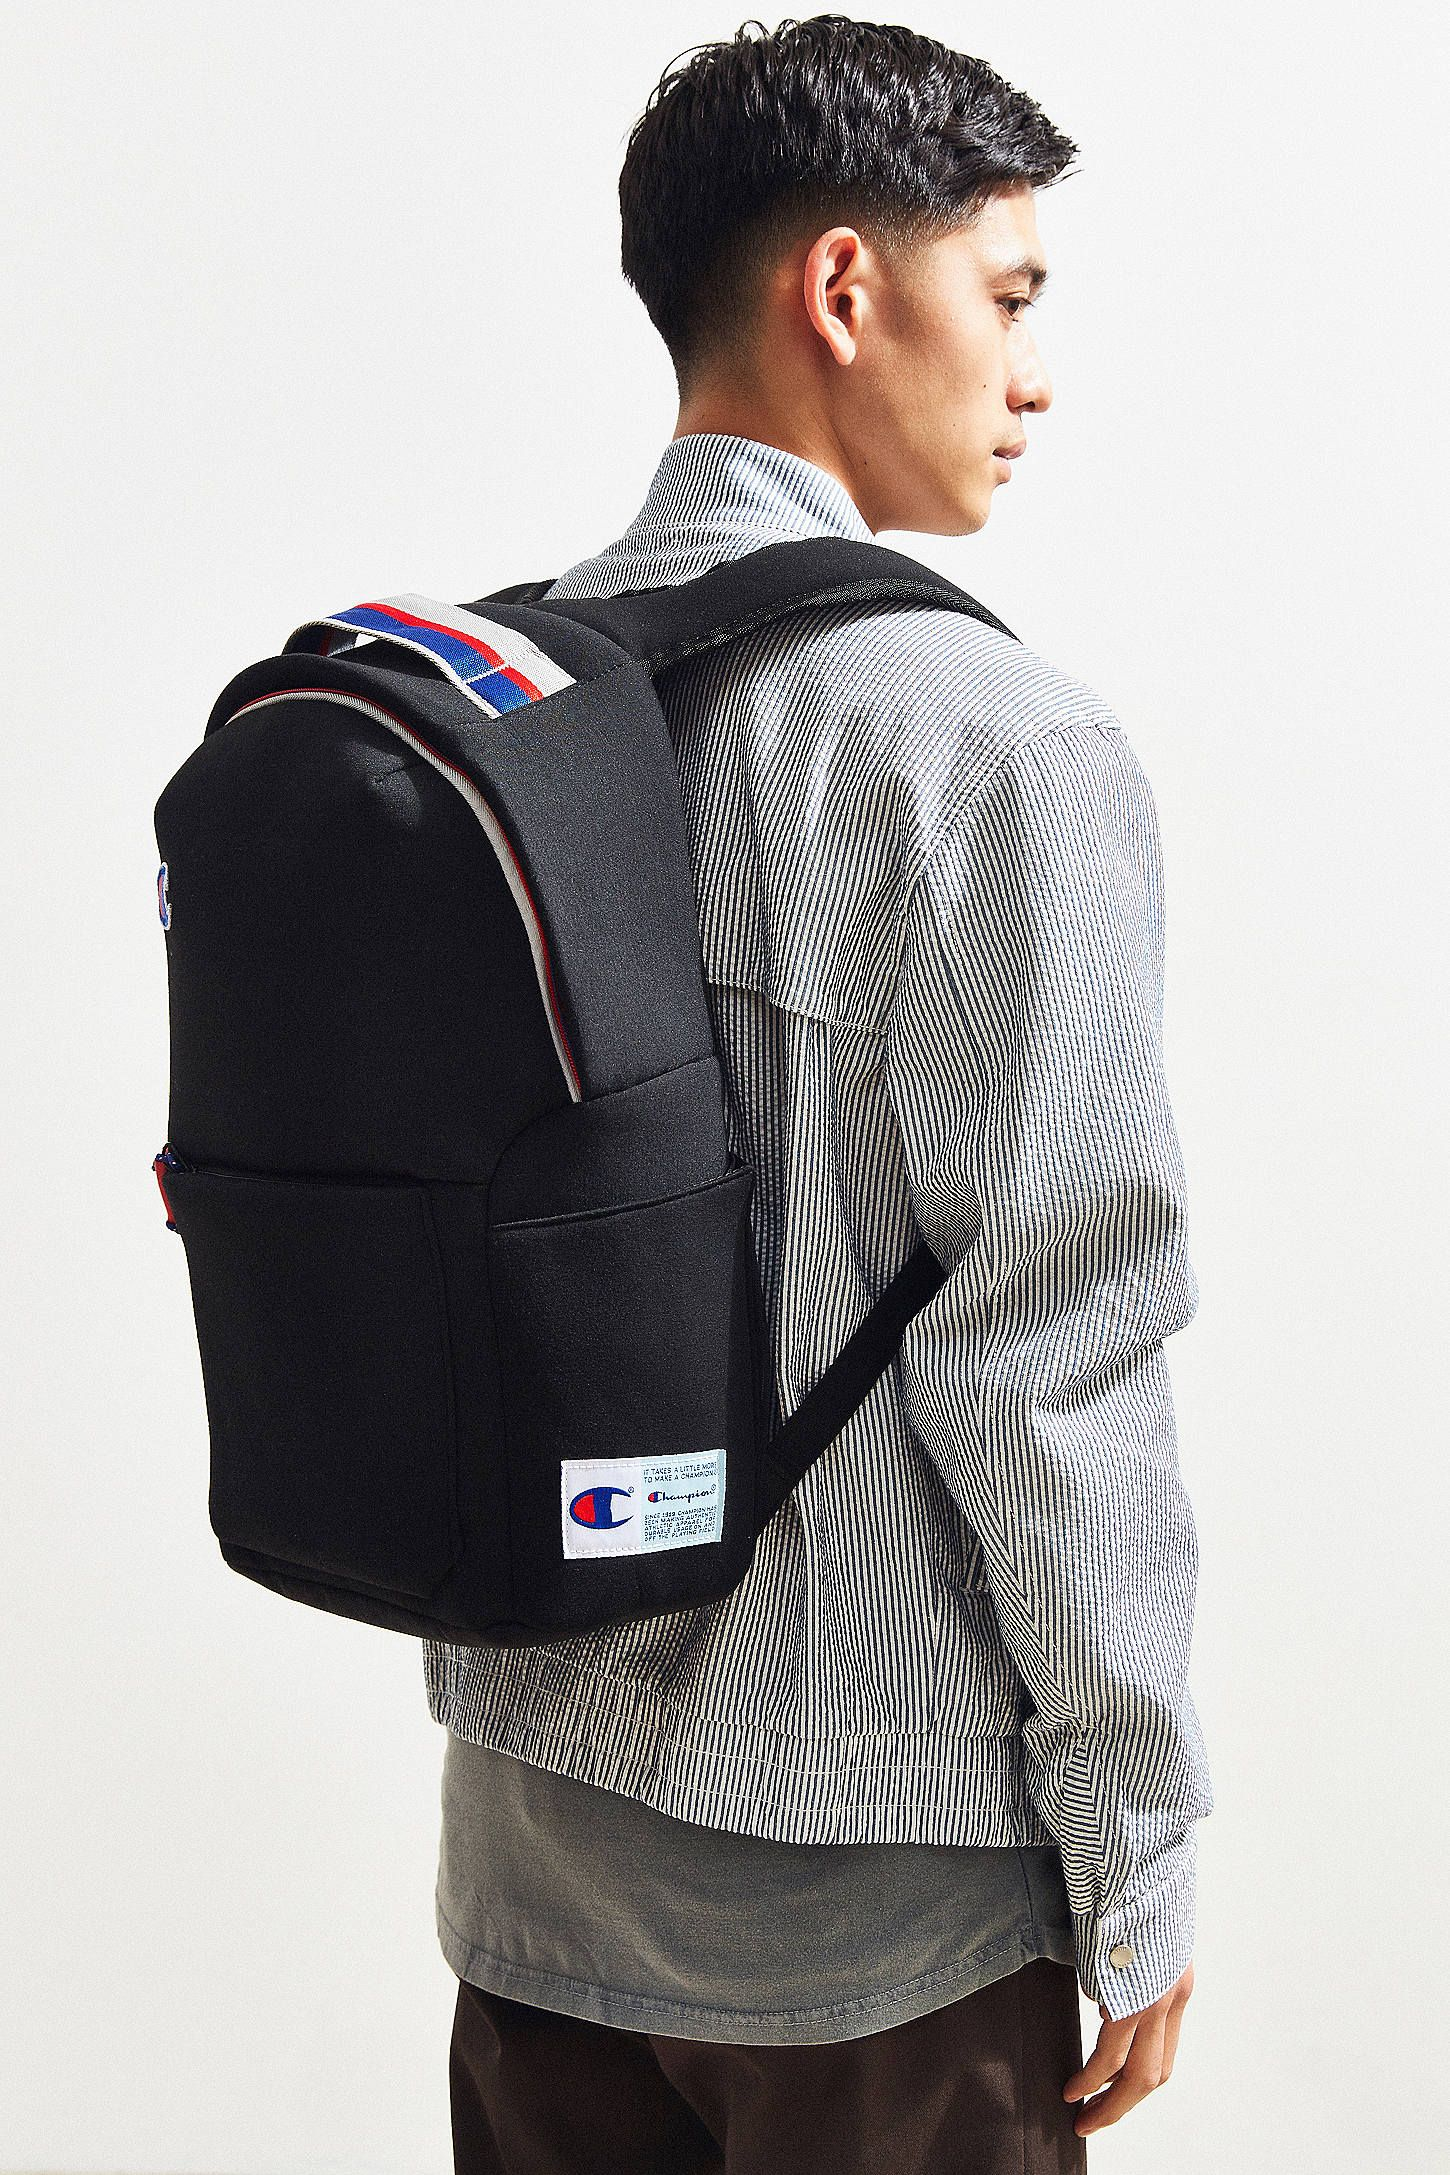 a5ce6fe25887 Champion Attribute Backpack